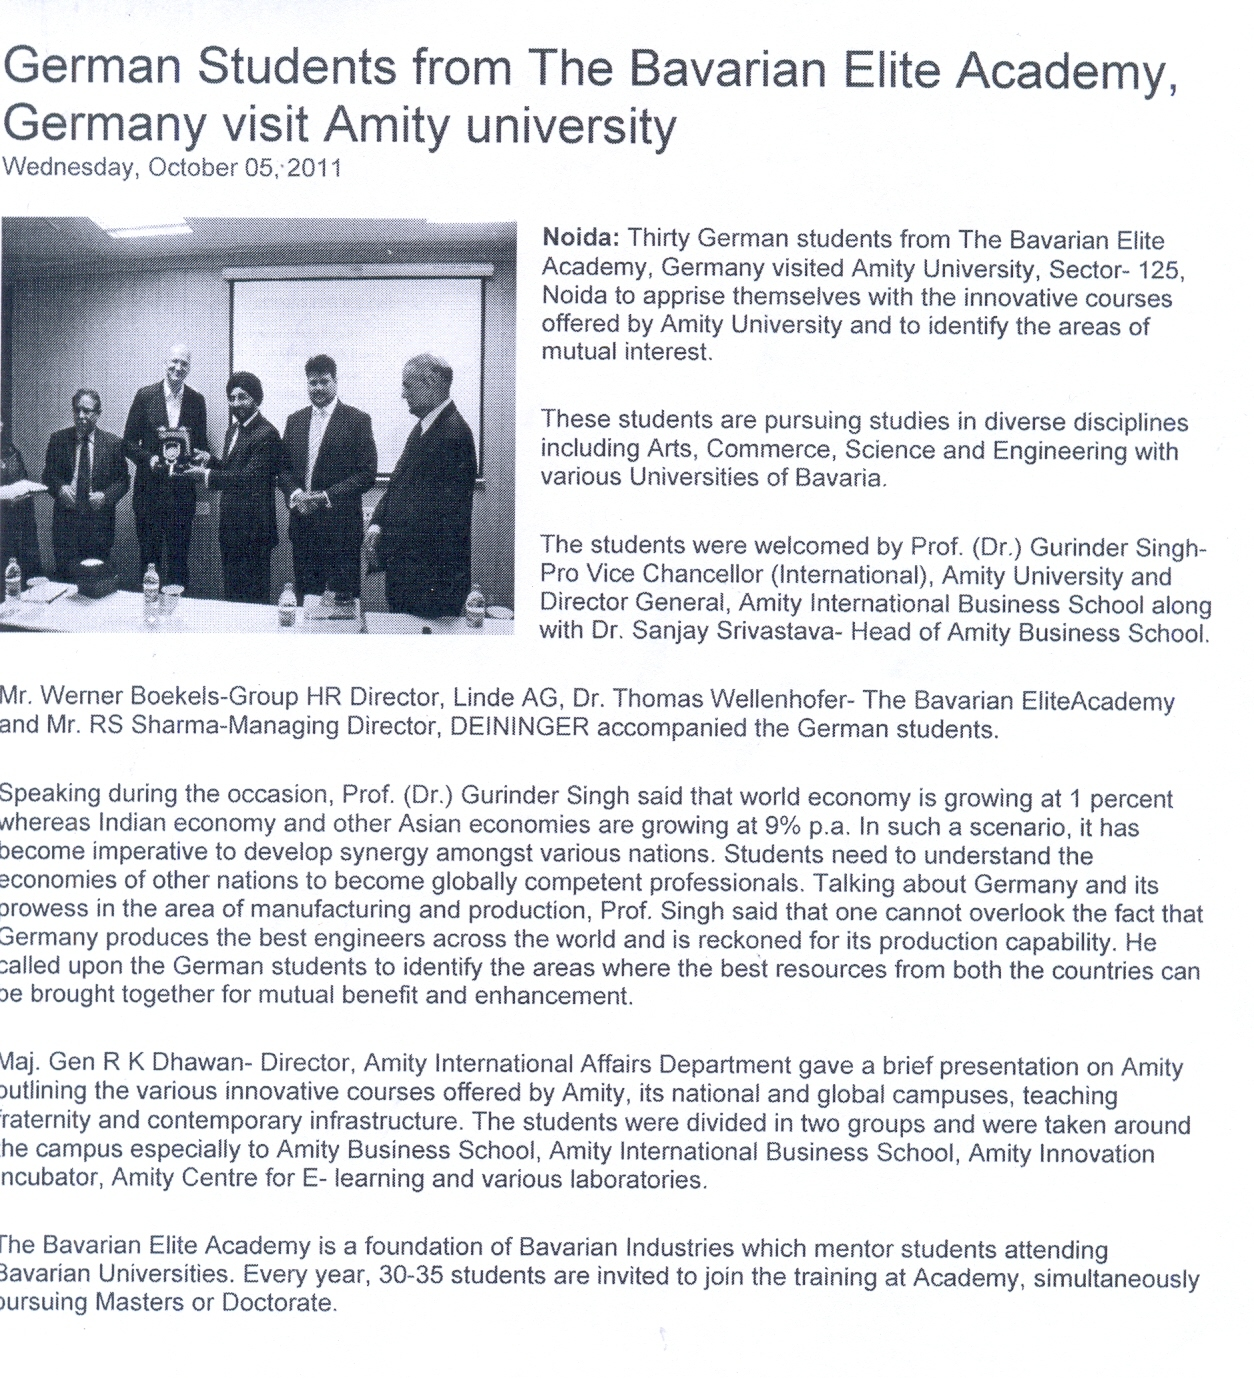 German Students from the Bavarian Elite Academy, Germany visit Amity